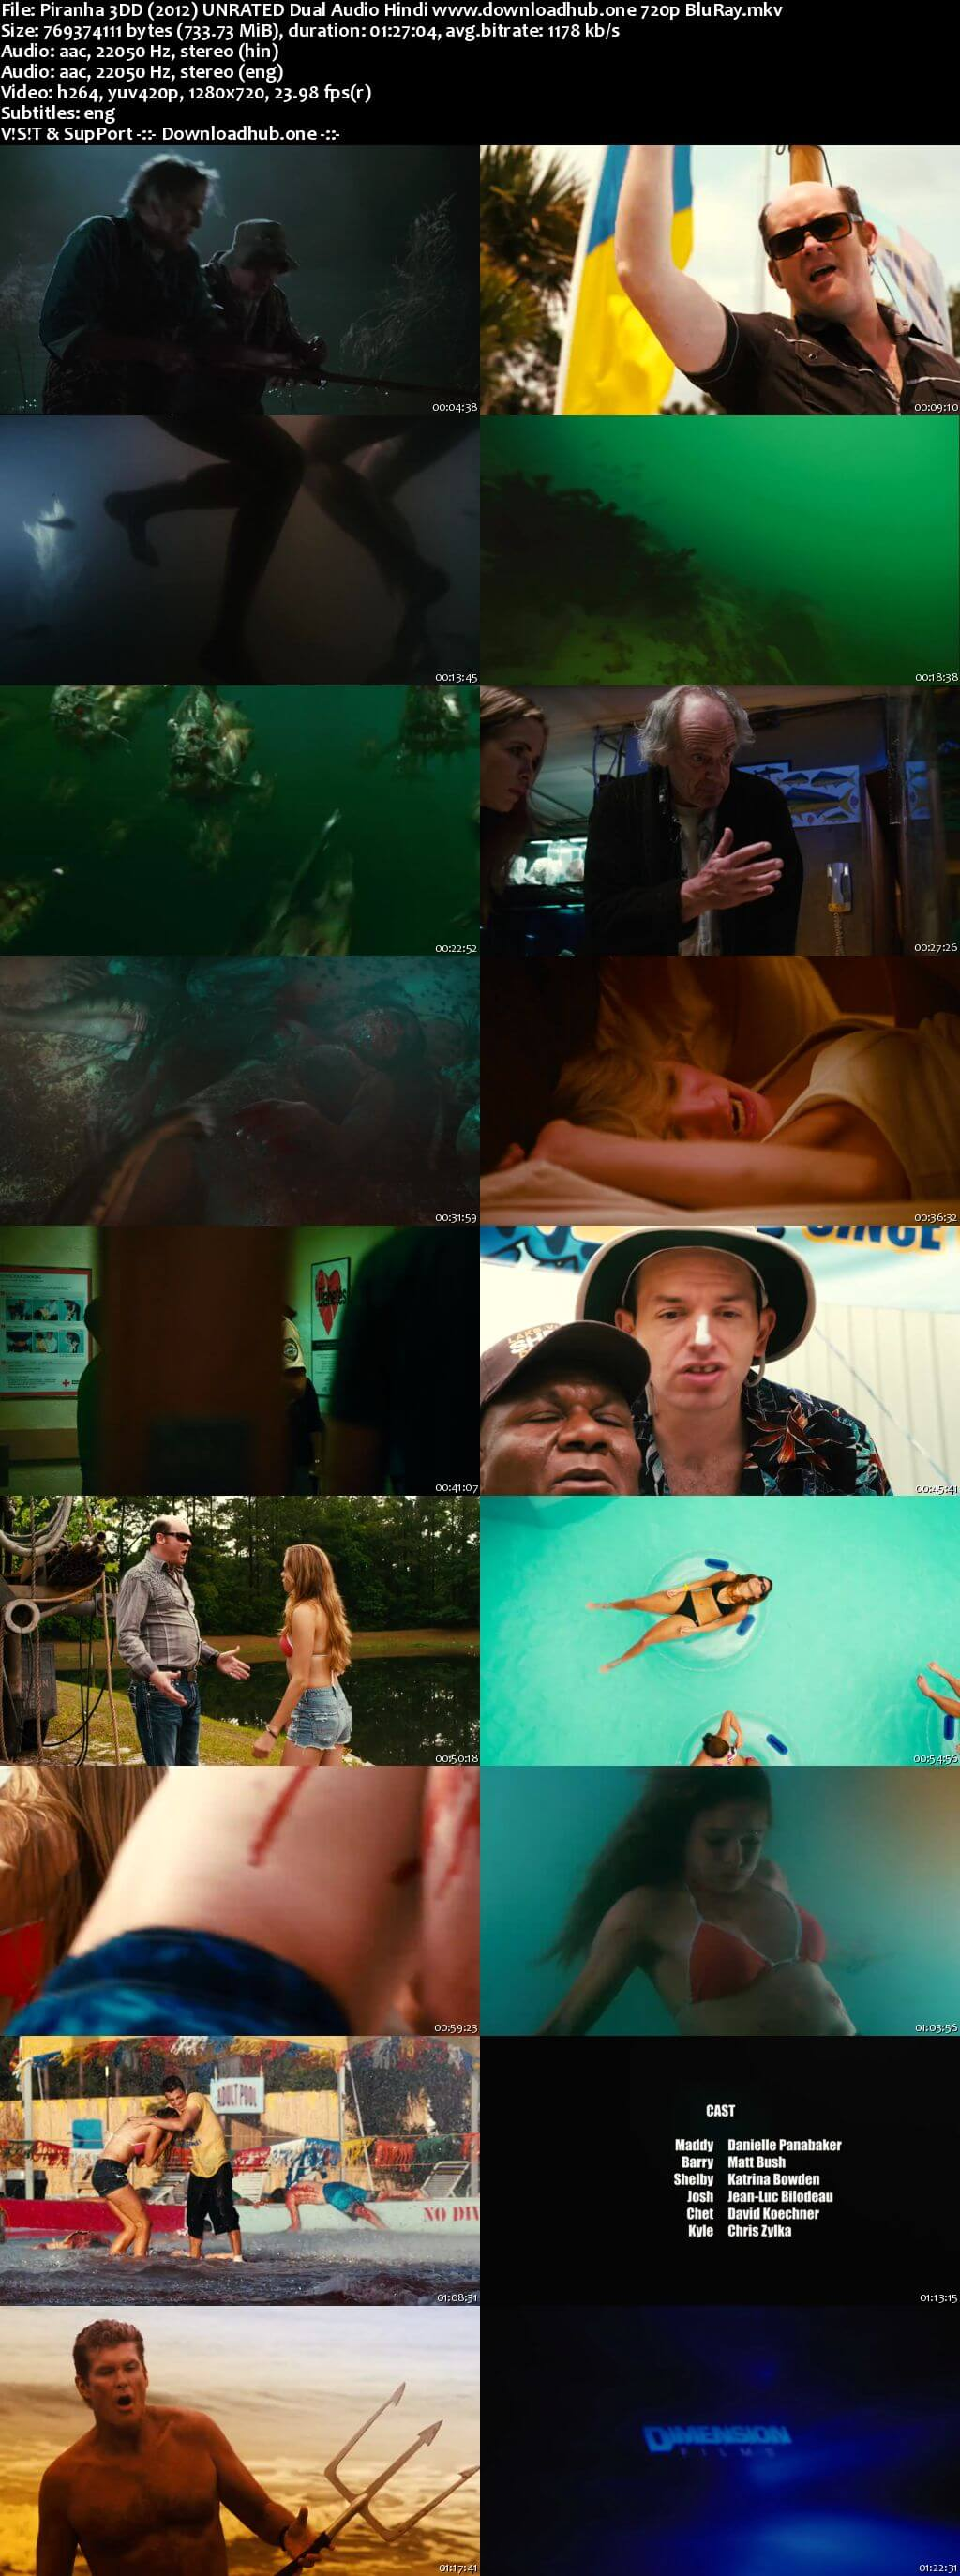 Piranha 3DD 2012 Hindi Dual Audio 720p UNRATED BluRay ESubs